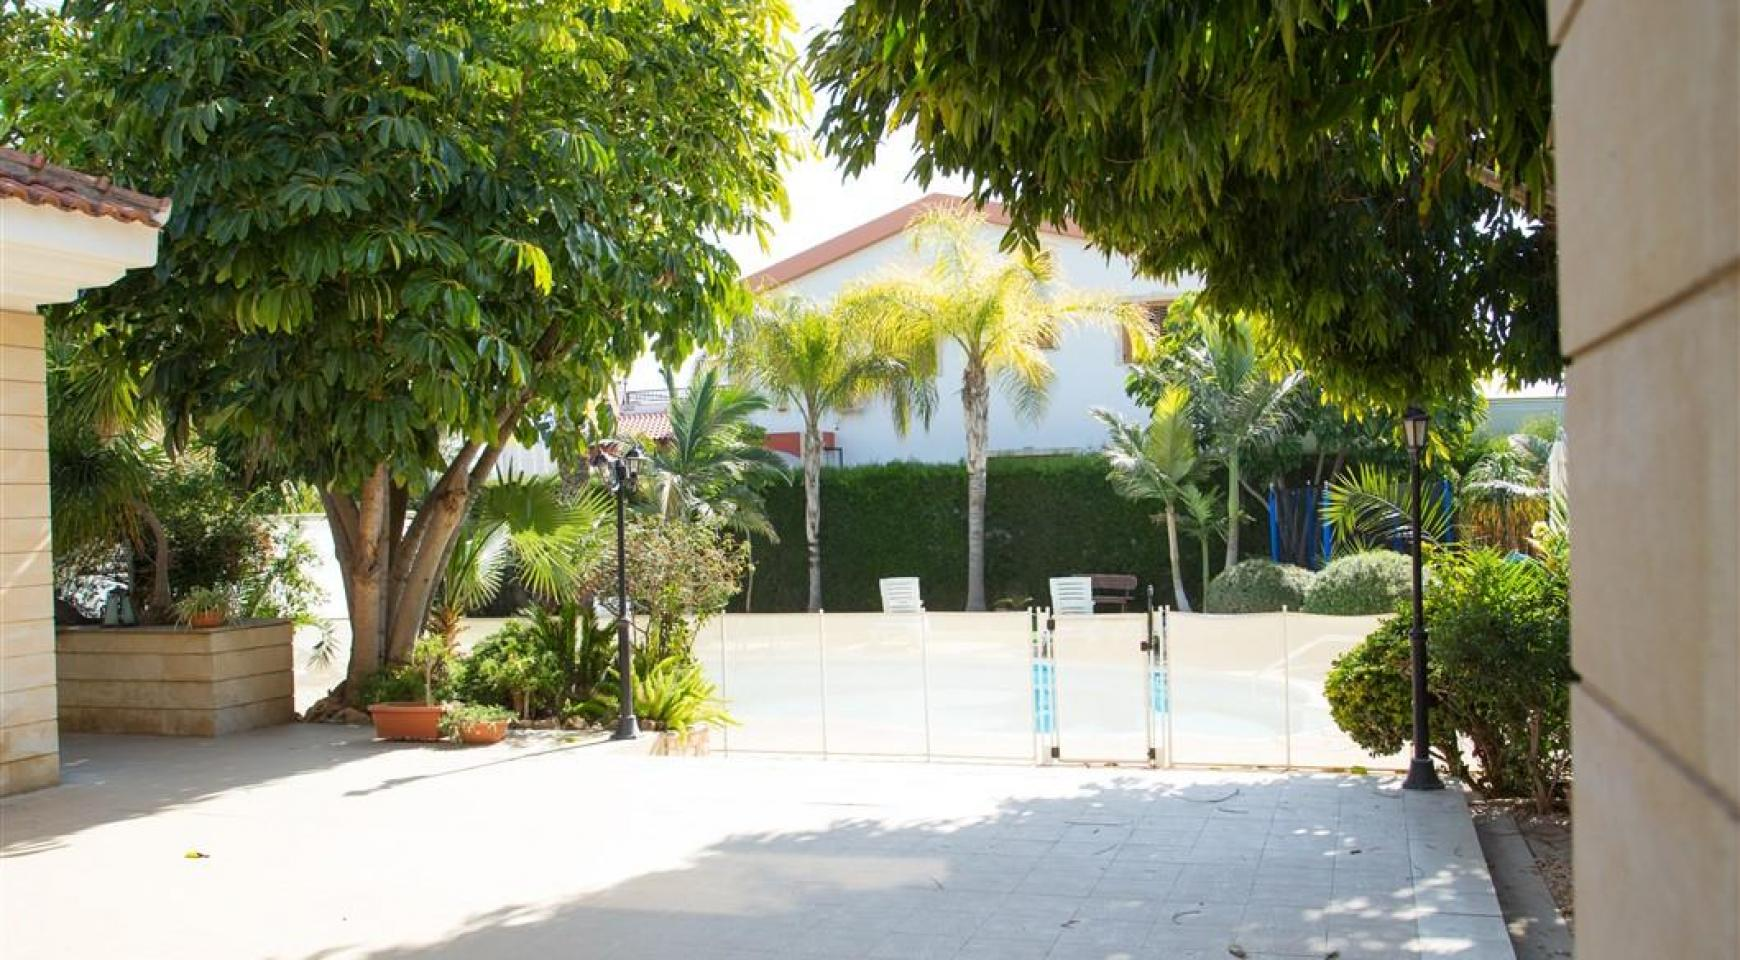 4 Bedroom Villa in Germasogeia Area - 10